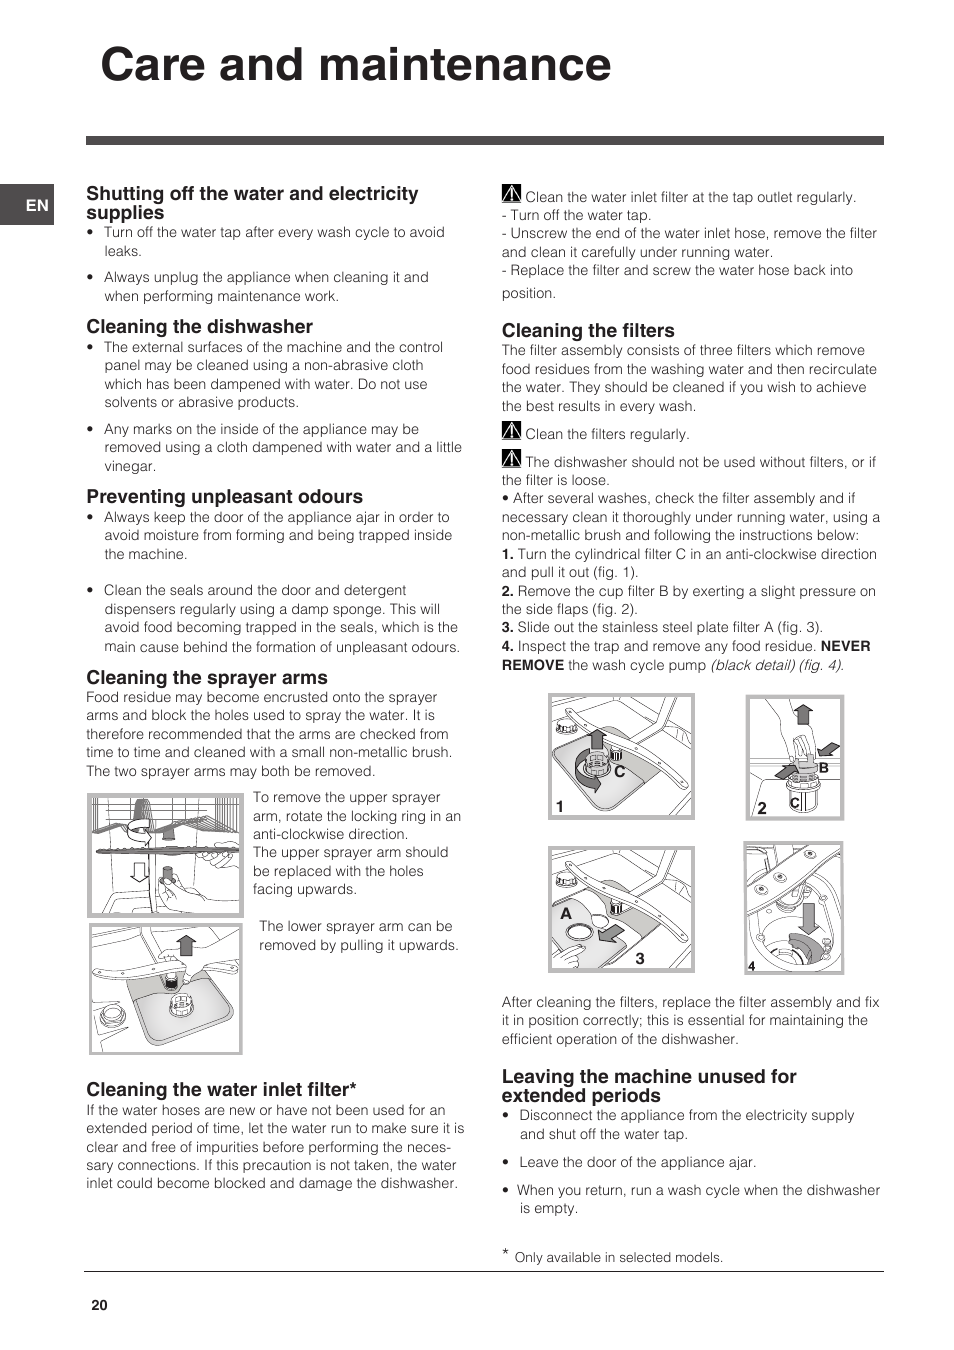 Care and maintenance | Indesit DSG-051-NX-EU User Manual | Page 20 ...